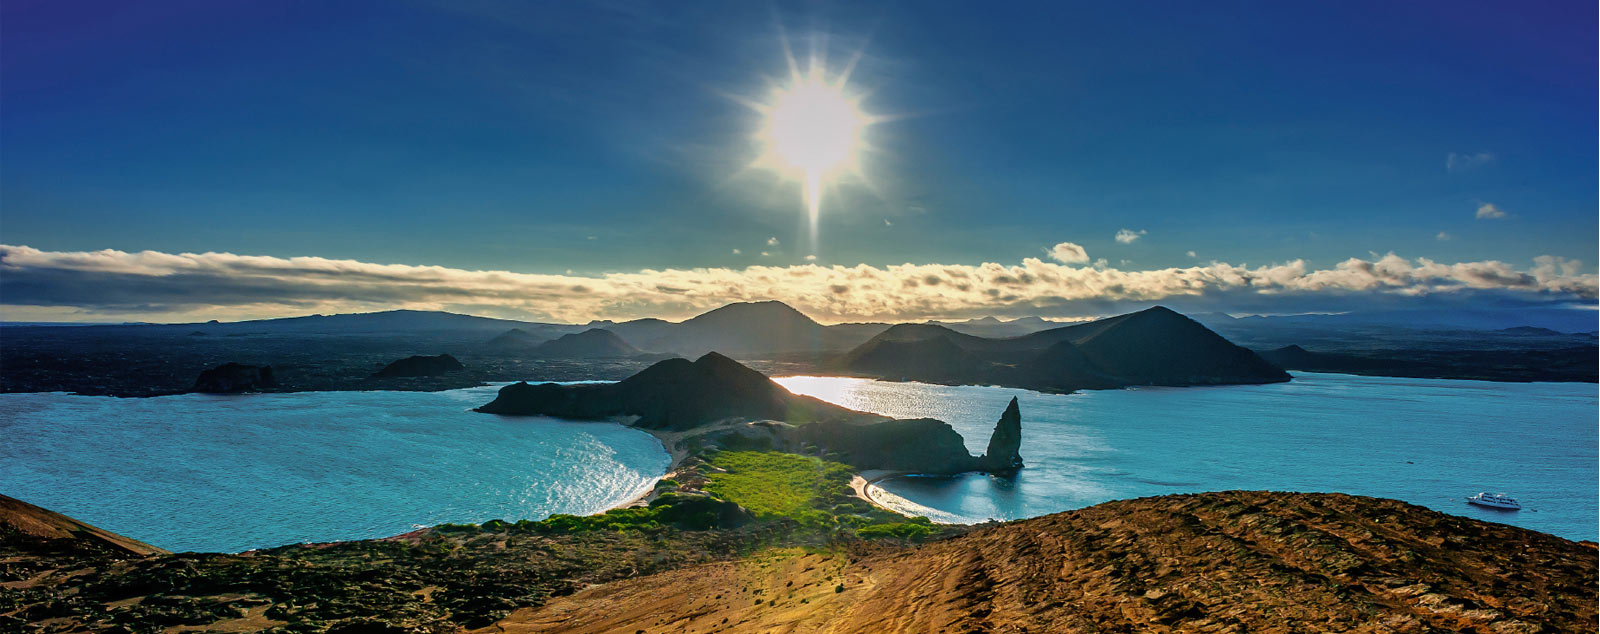 A view with the sun in the sky, blazing over some of the Galapagos islands, surrounded by blue waters